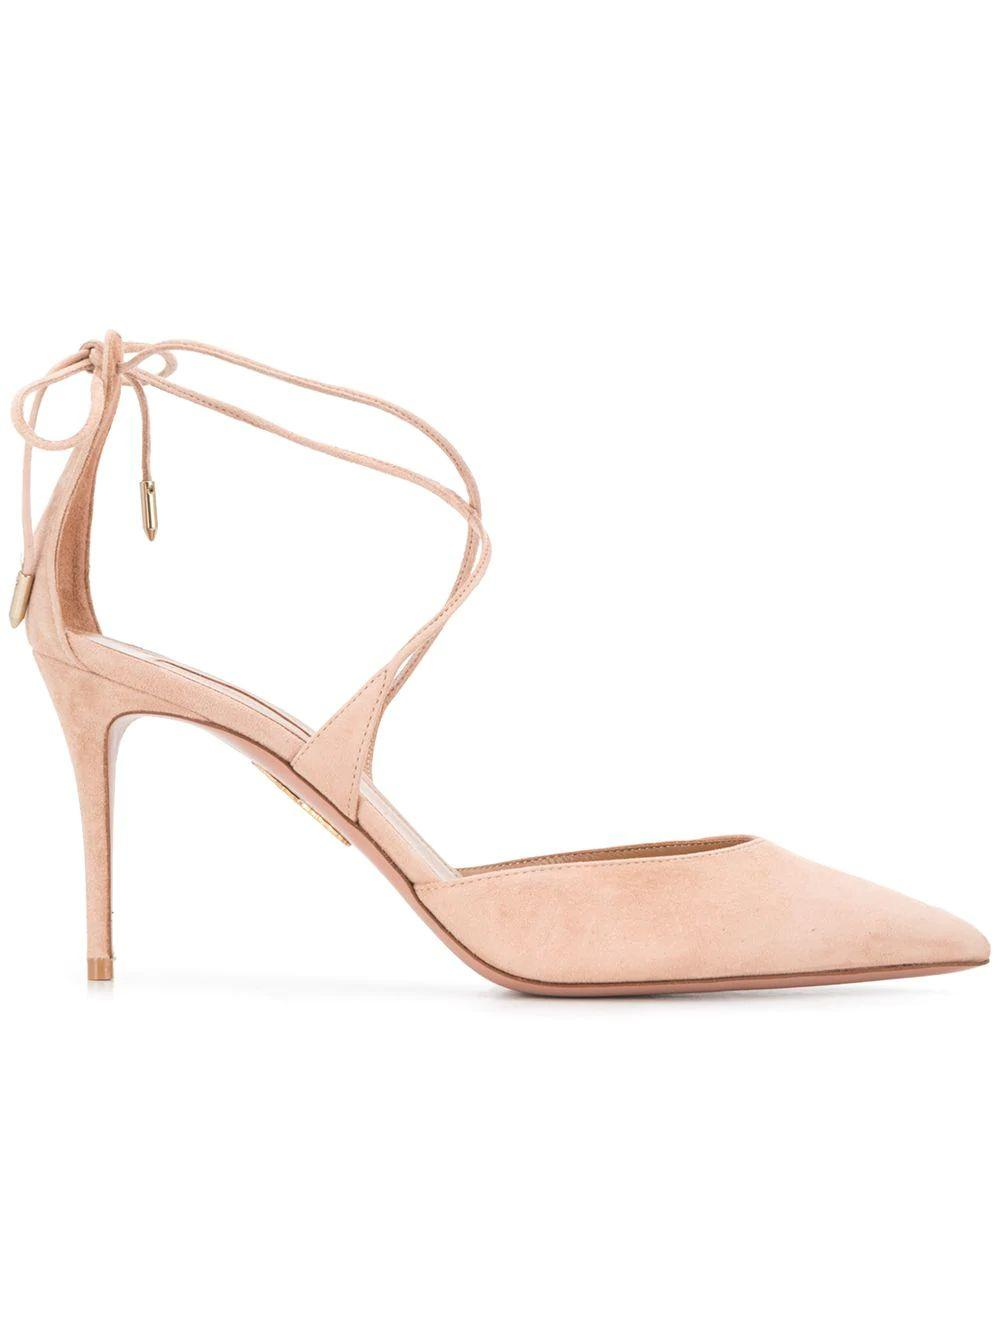 Very Matilde Suede 85mm Pump With Ankle Str